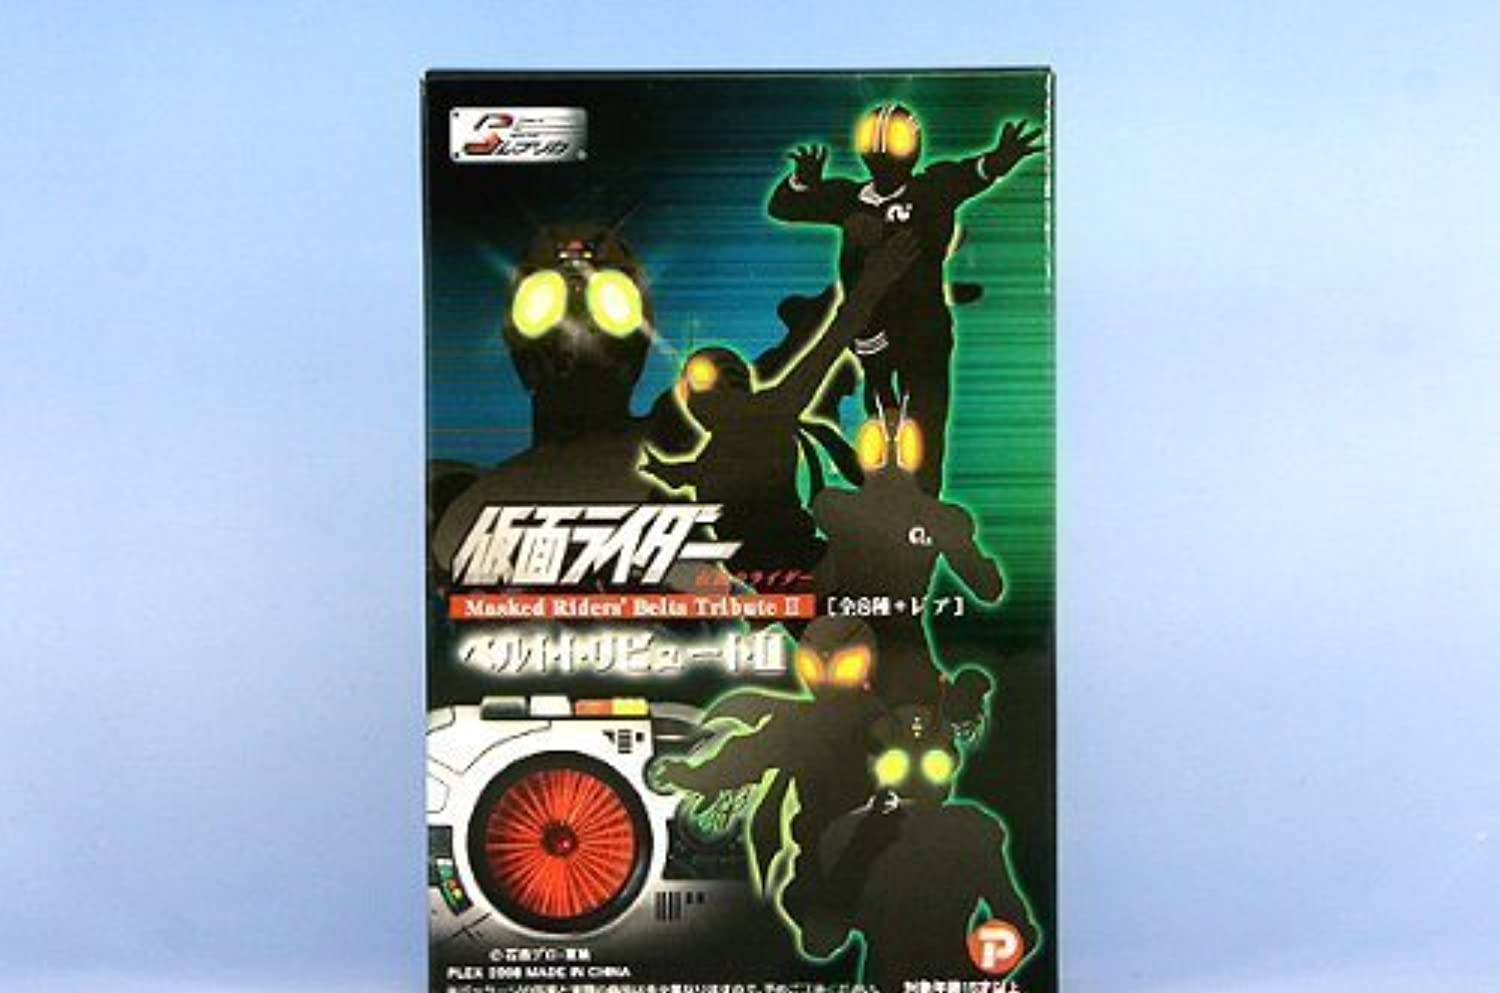 Kamen Masked Rider Belt Tribute II 2 Case of 10 (Discount)